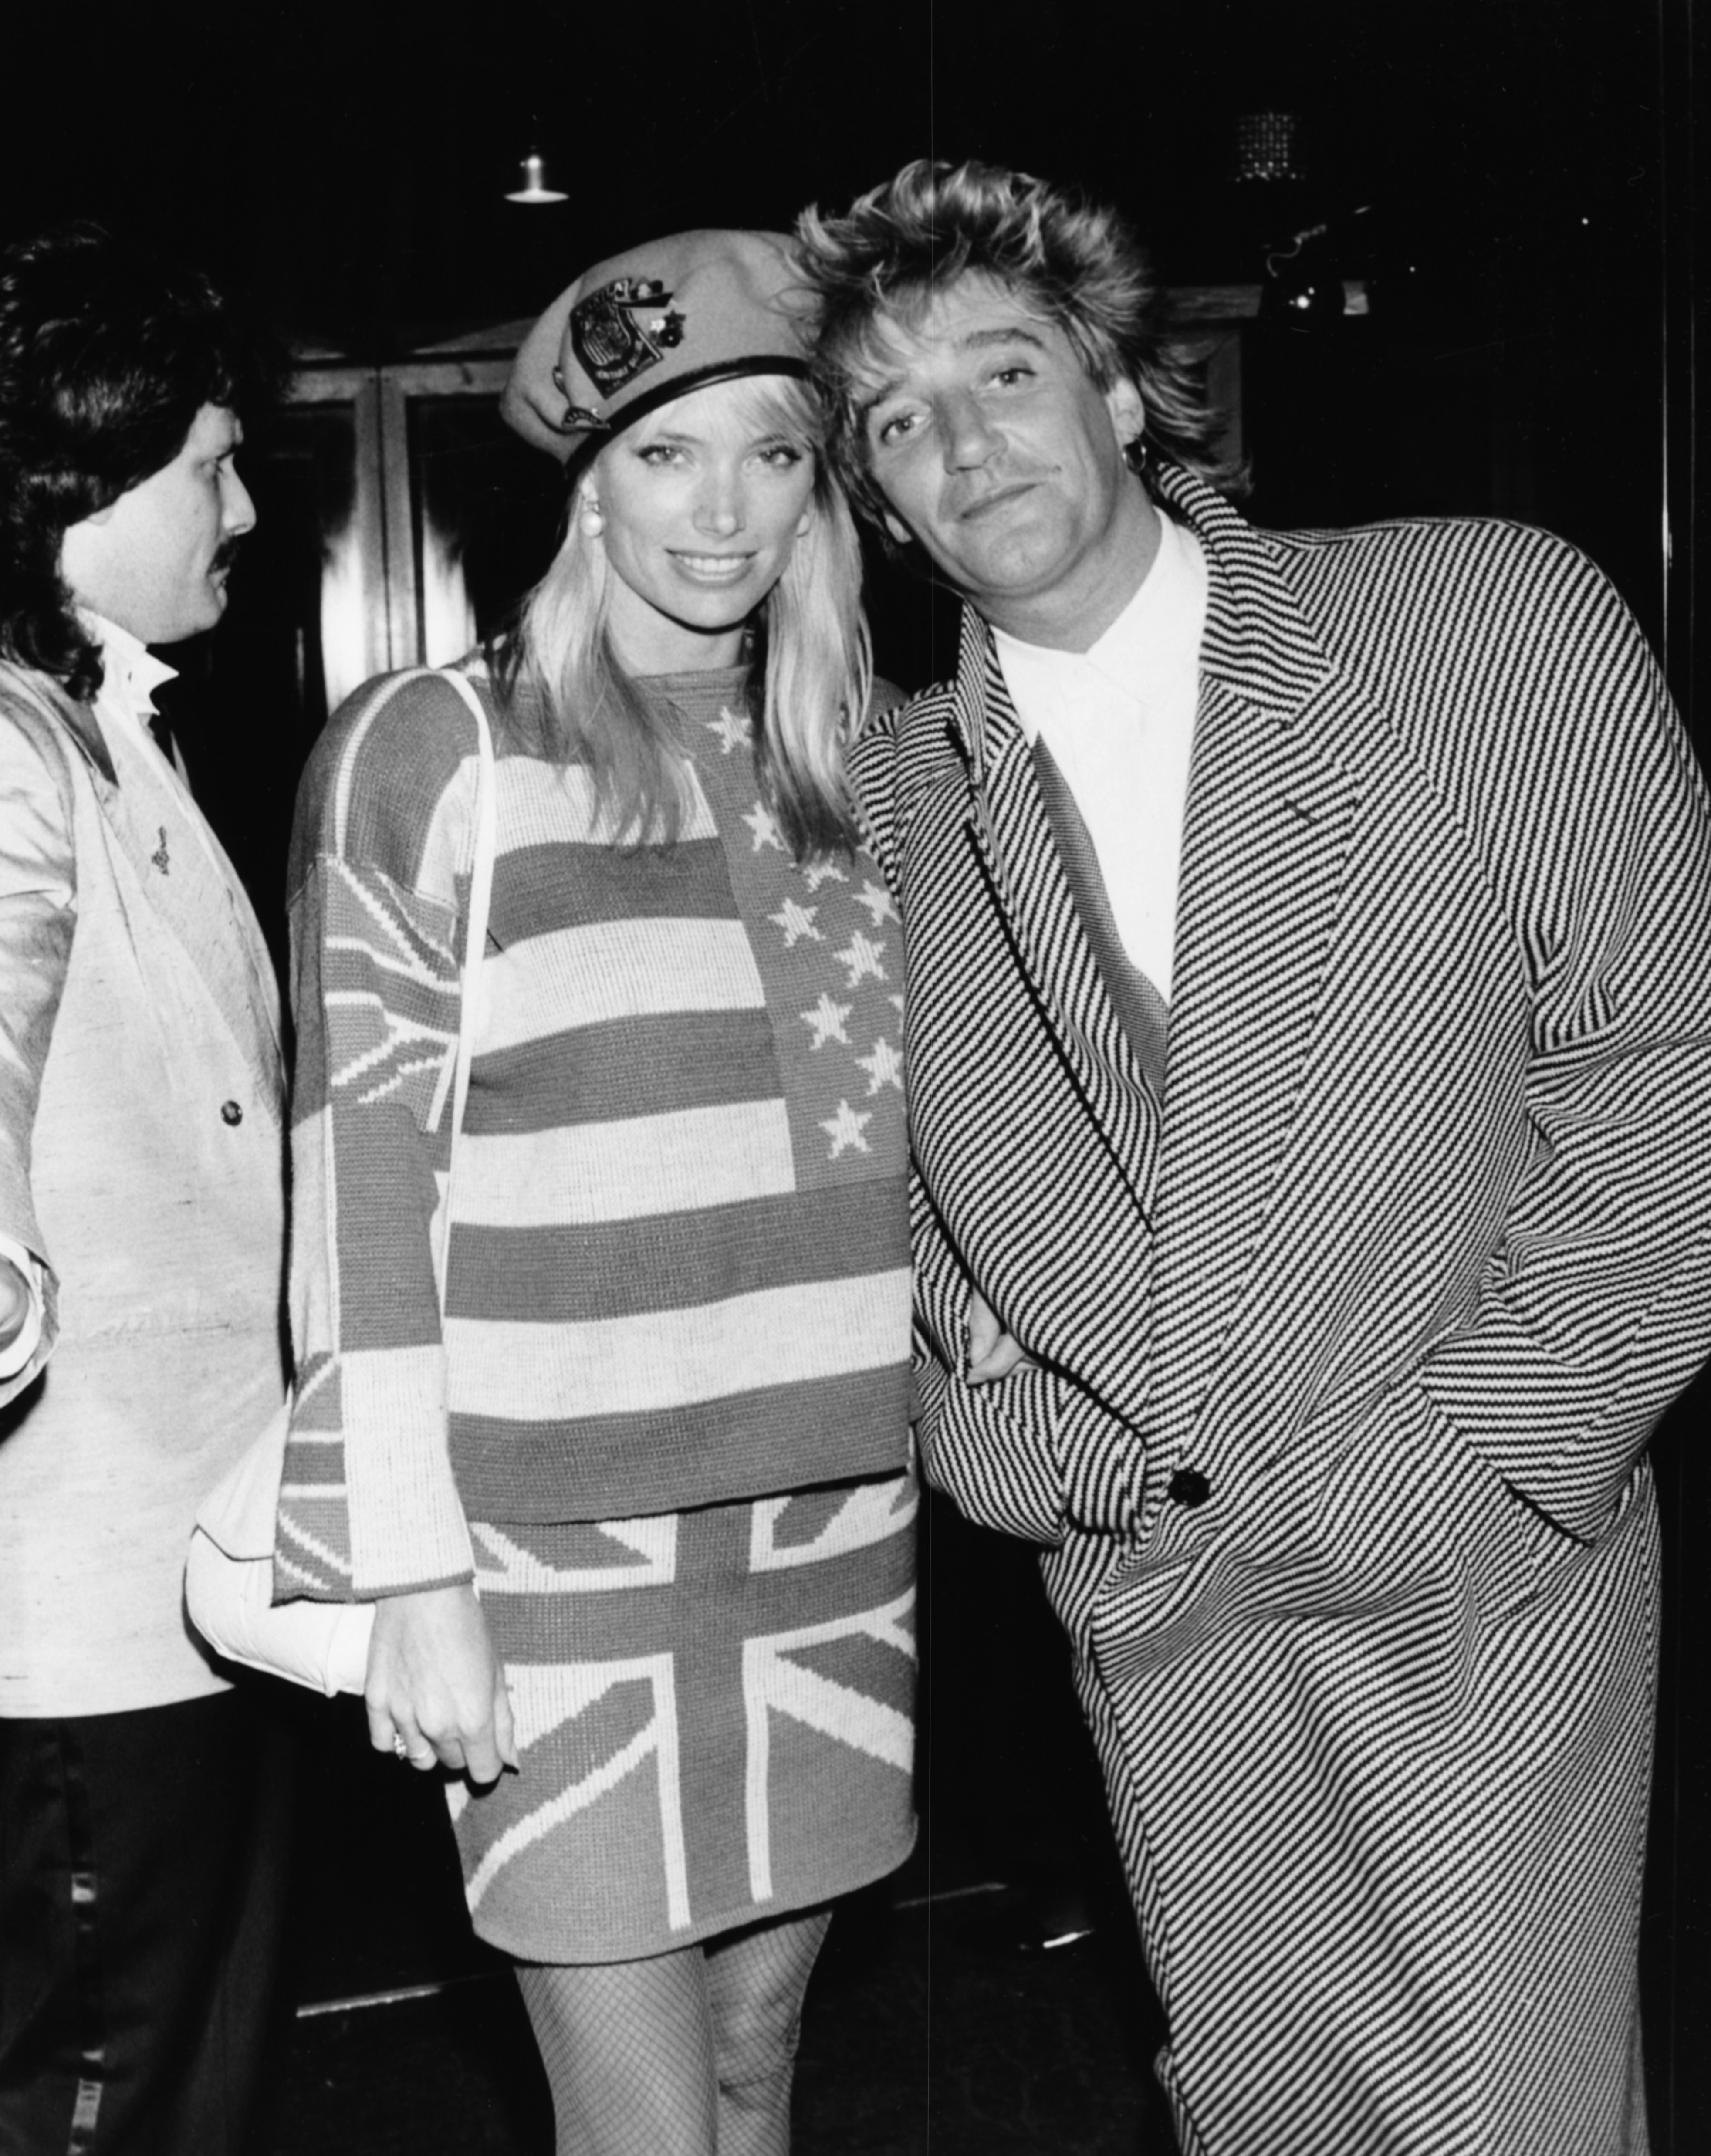 Rod Stewart and model Kelly Emberg at Stringfellows nightclub in London, September 18th 1986 | Photo: GettyImages